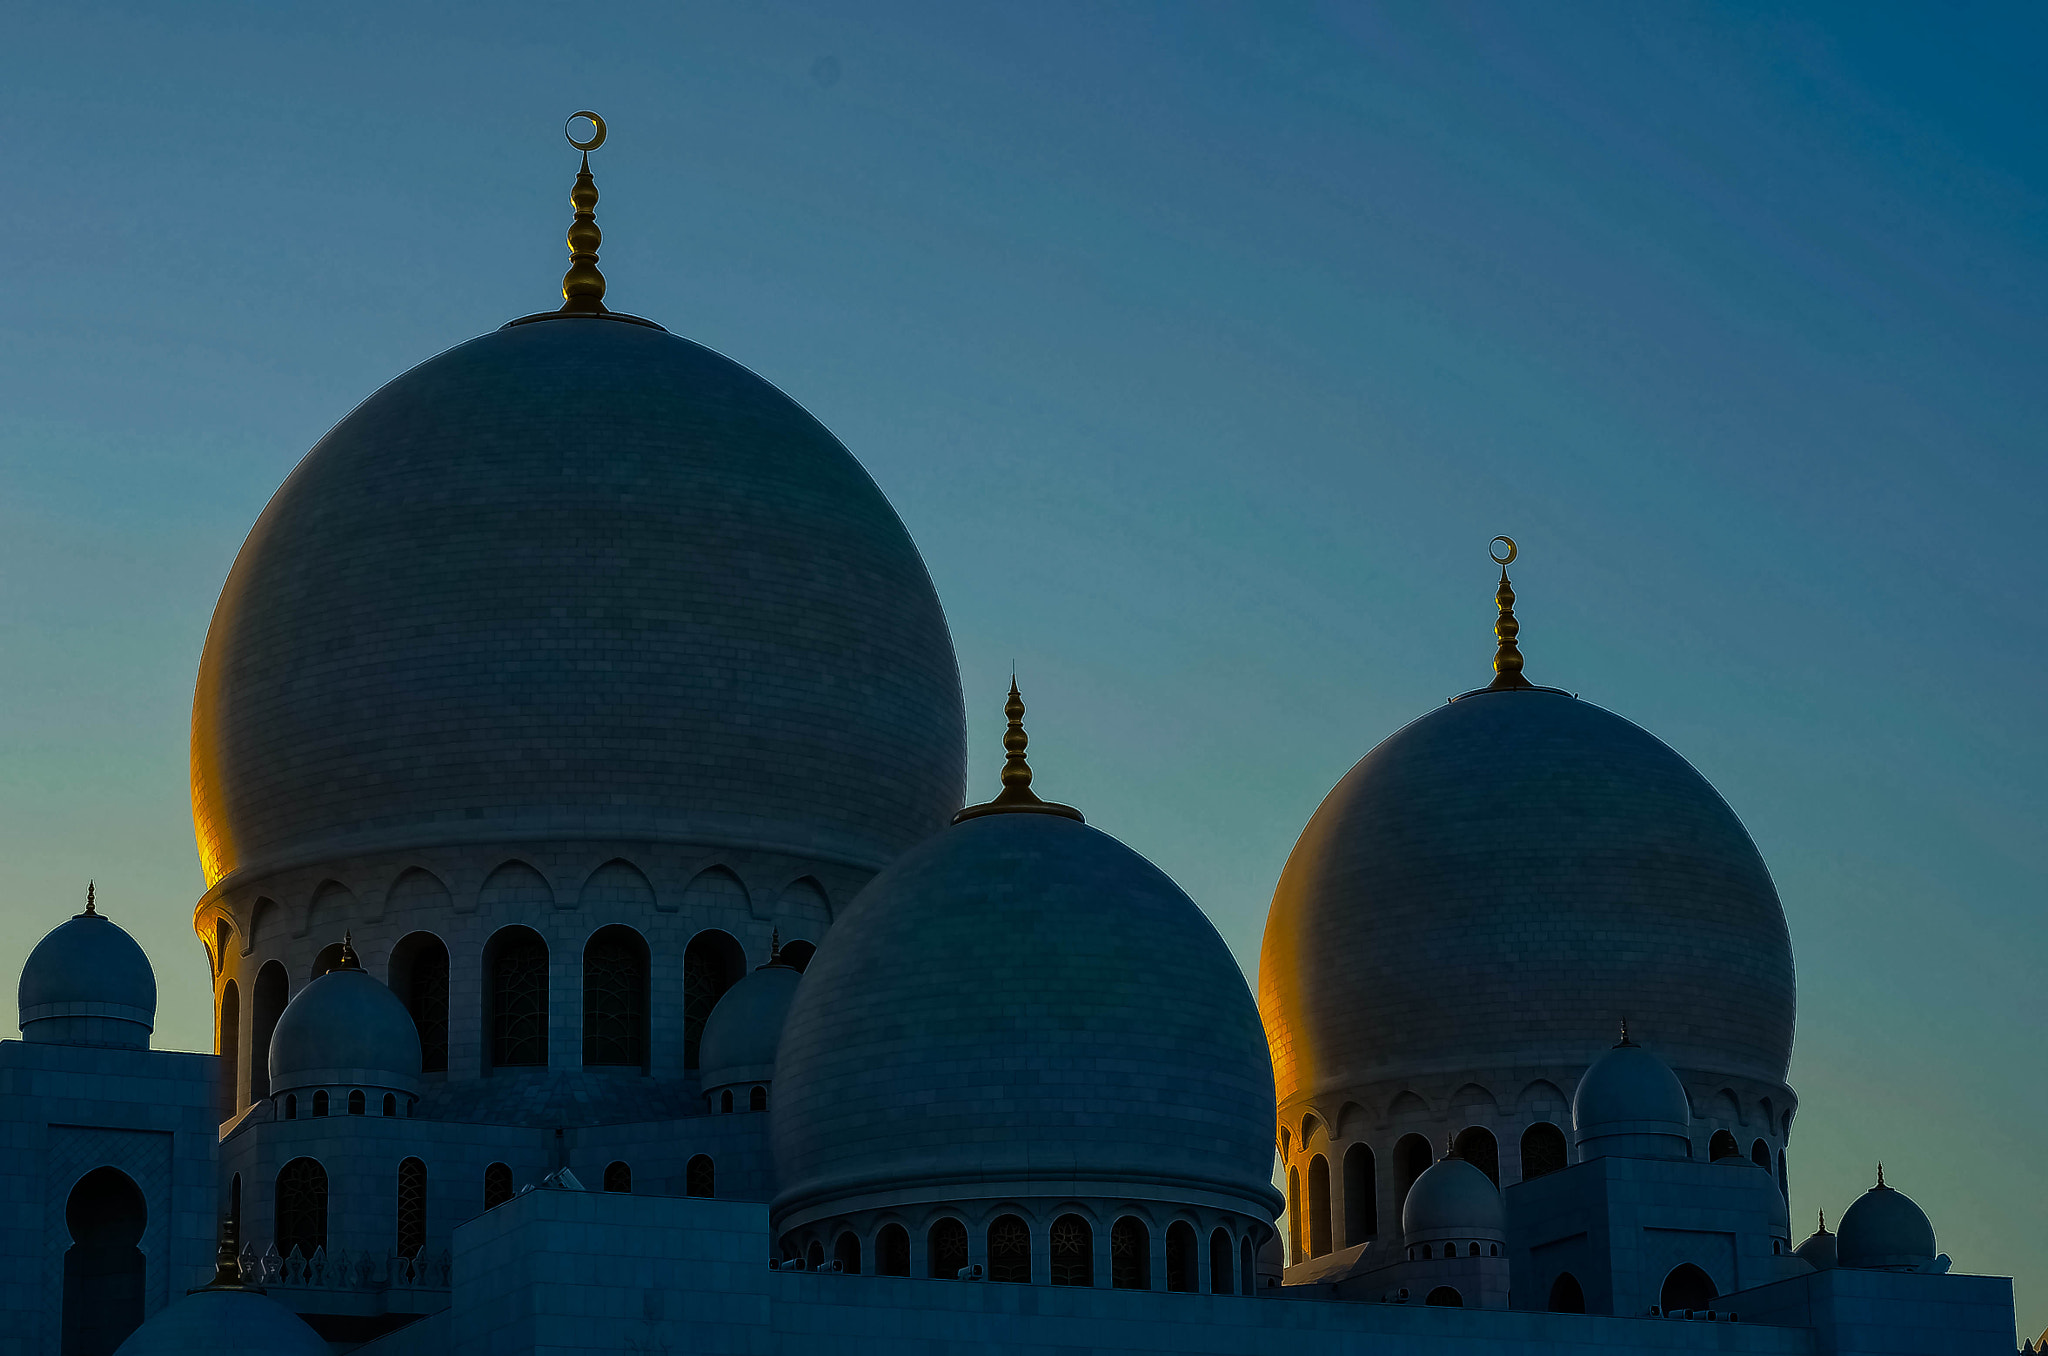 Photograph Domes at Dusk by julian john on 500px